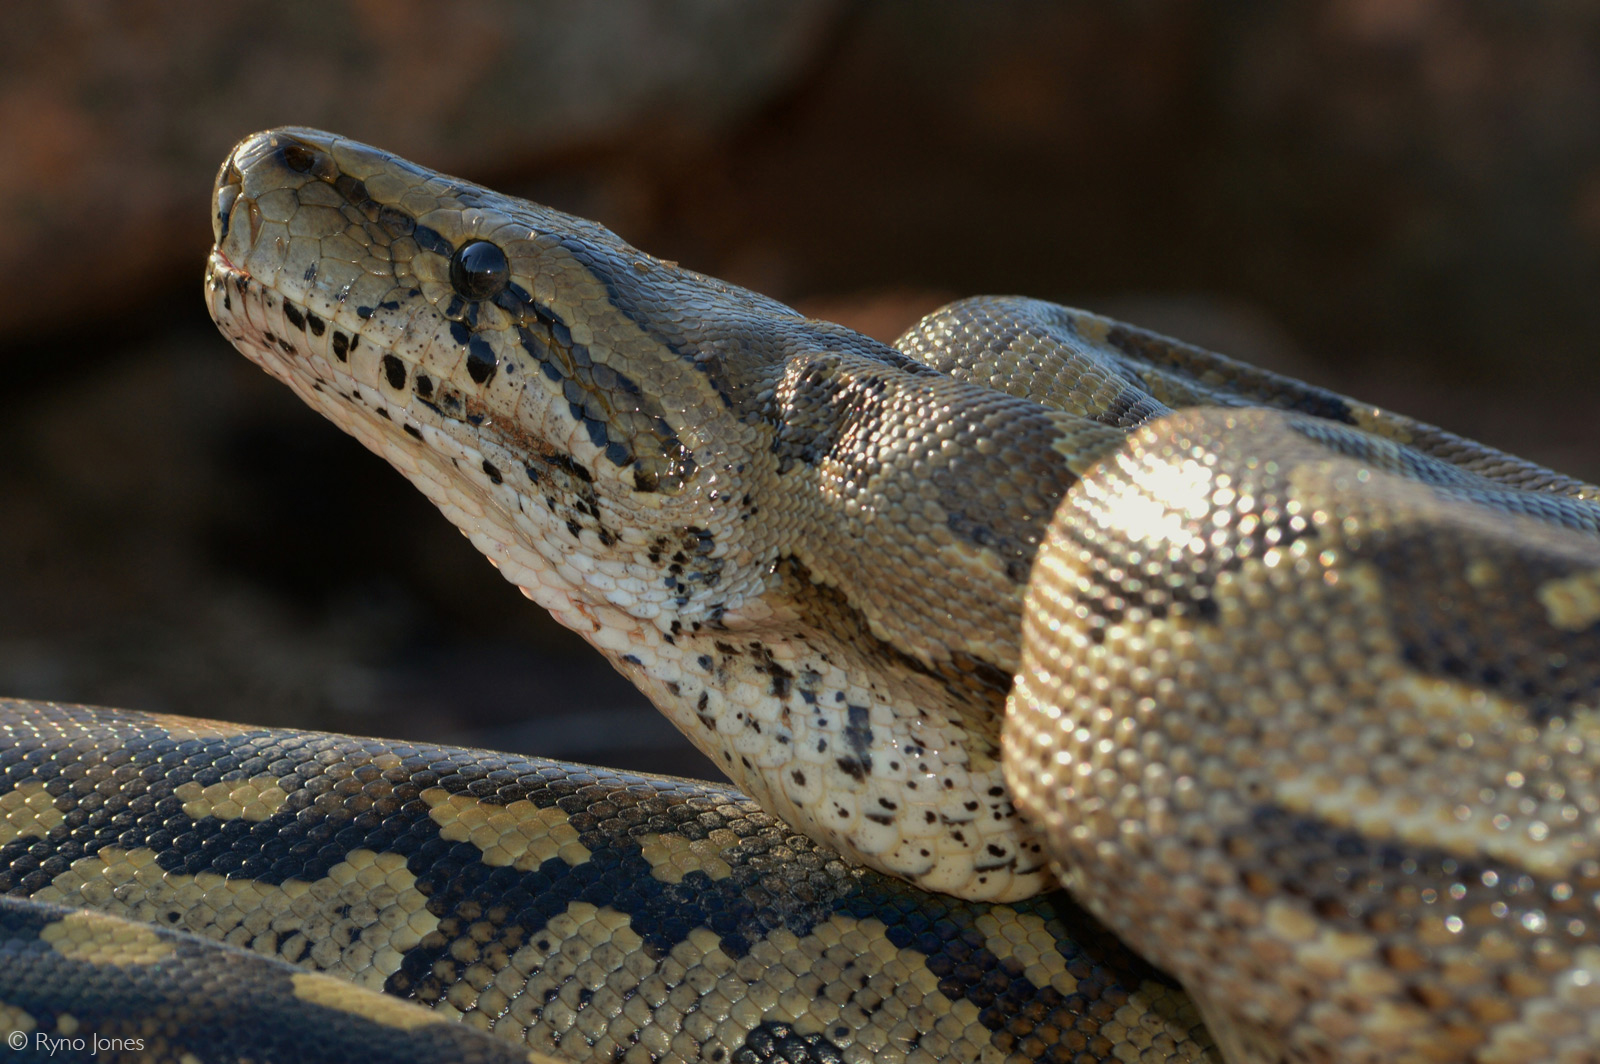 African rock python. Lephalale, Limpopo Province, South Africa © Ryno Jones